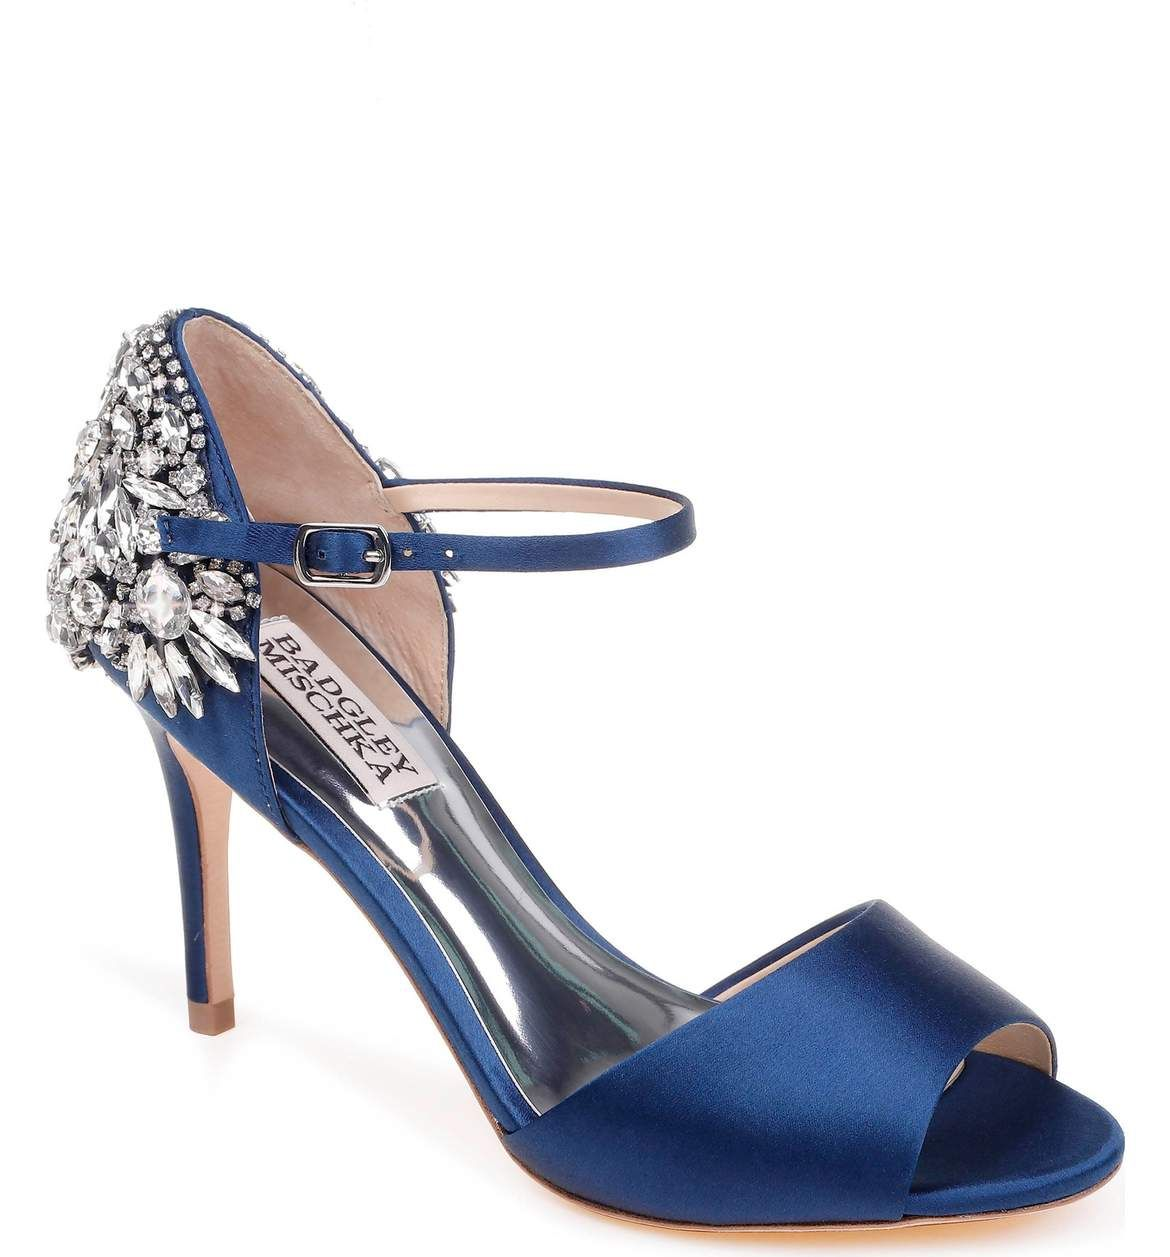 Bridal Shoes At Nordstrom: Pin By Debbie Hale On Love These Shoes